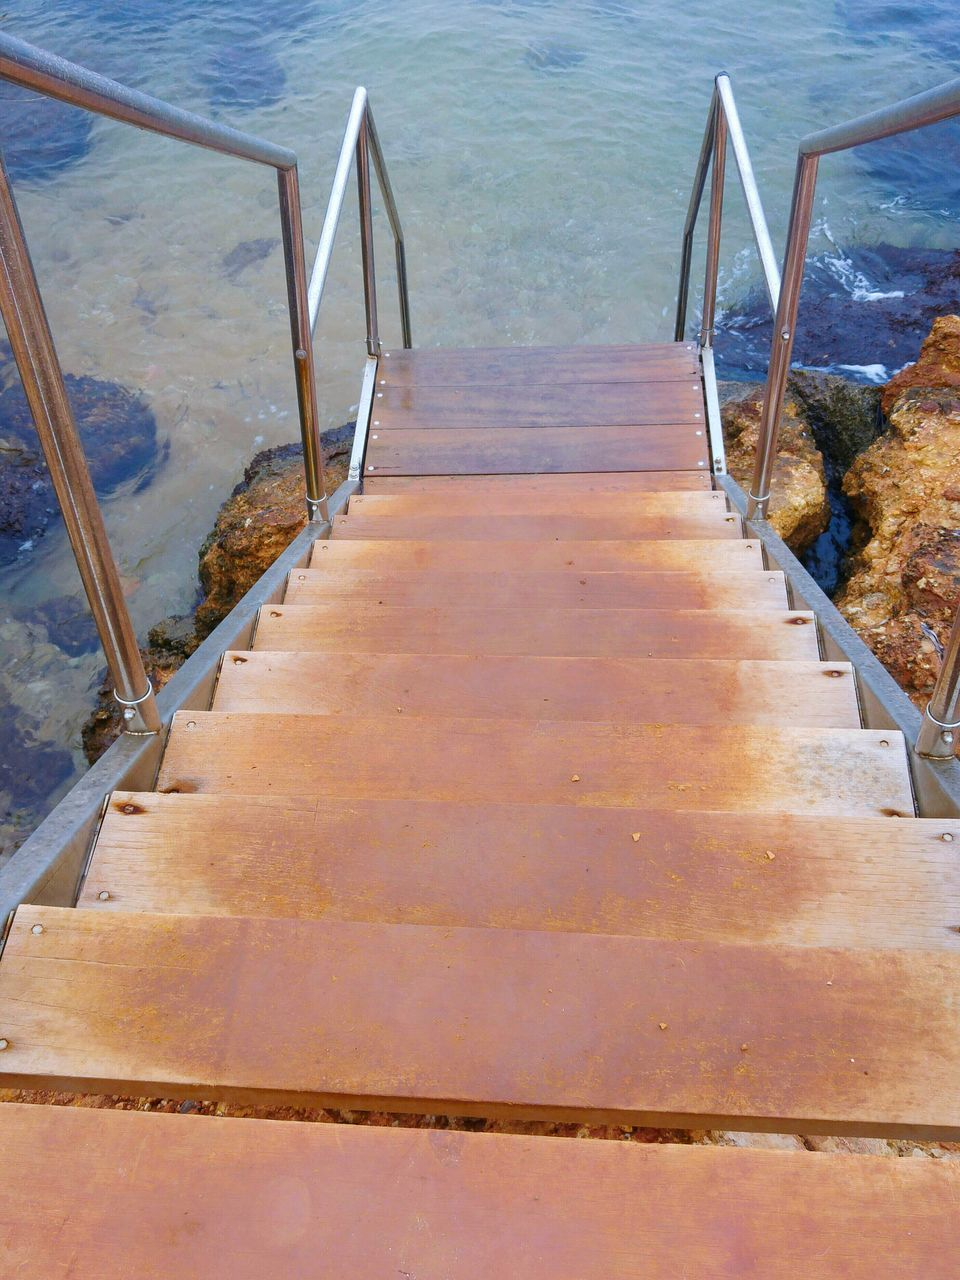 water, railing, sea, steps, the way forward, nature, staircase, steps and staircases, no people, day, tranquility, outdoors, beauty in nature, scenics, hand rail, horizon over water